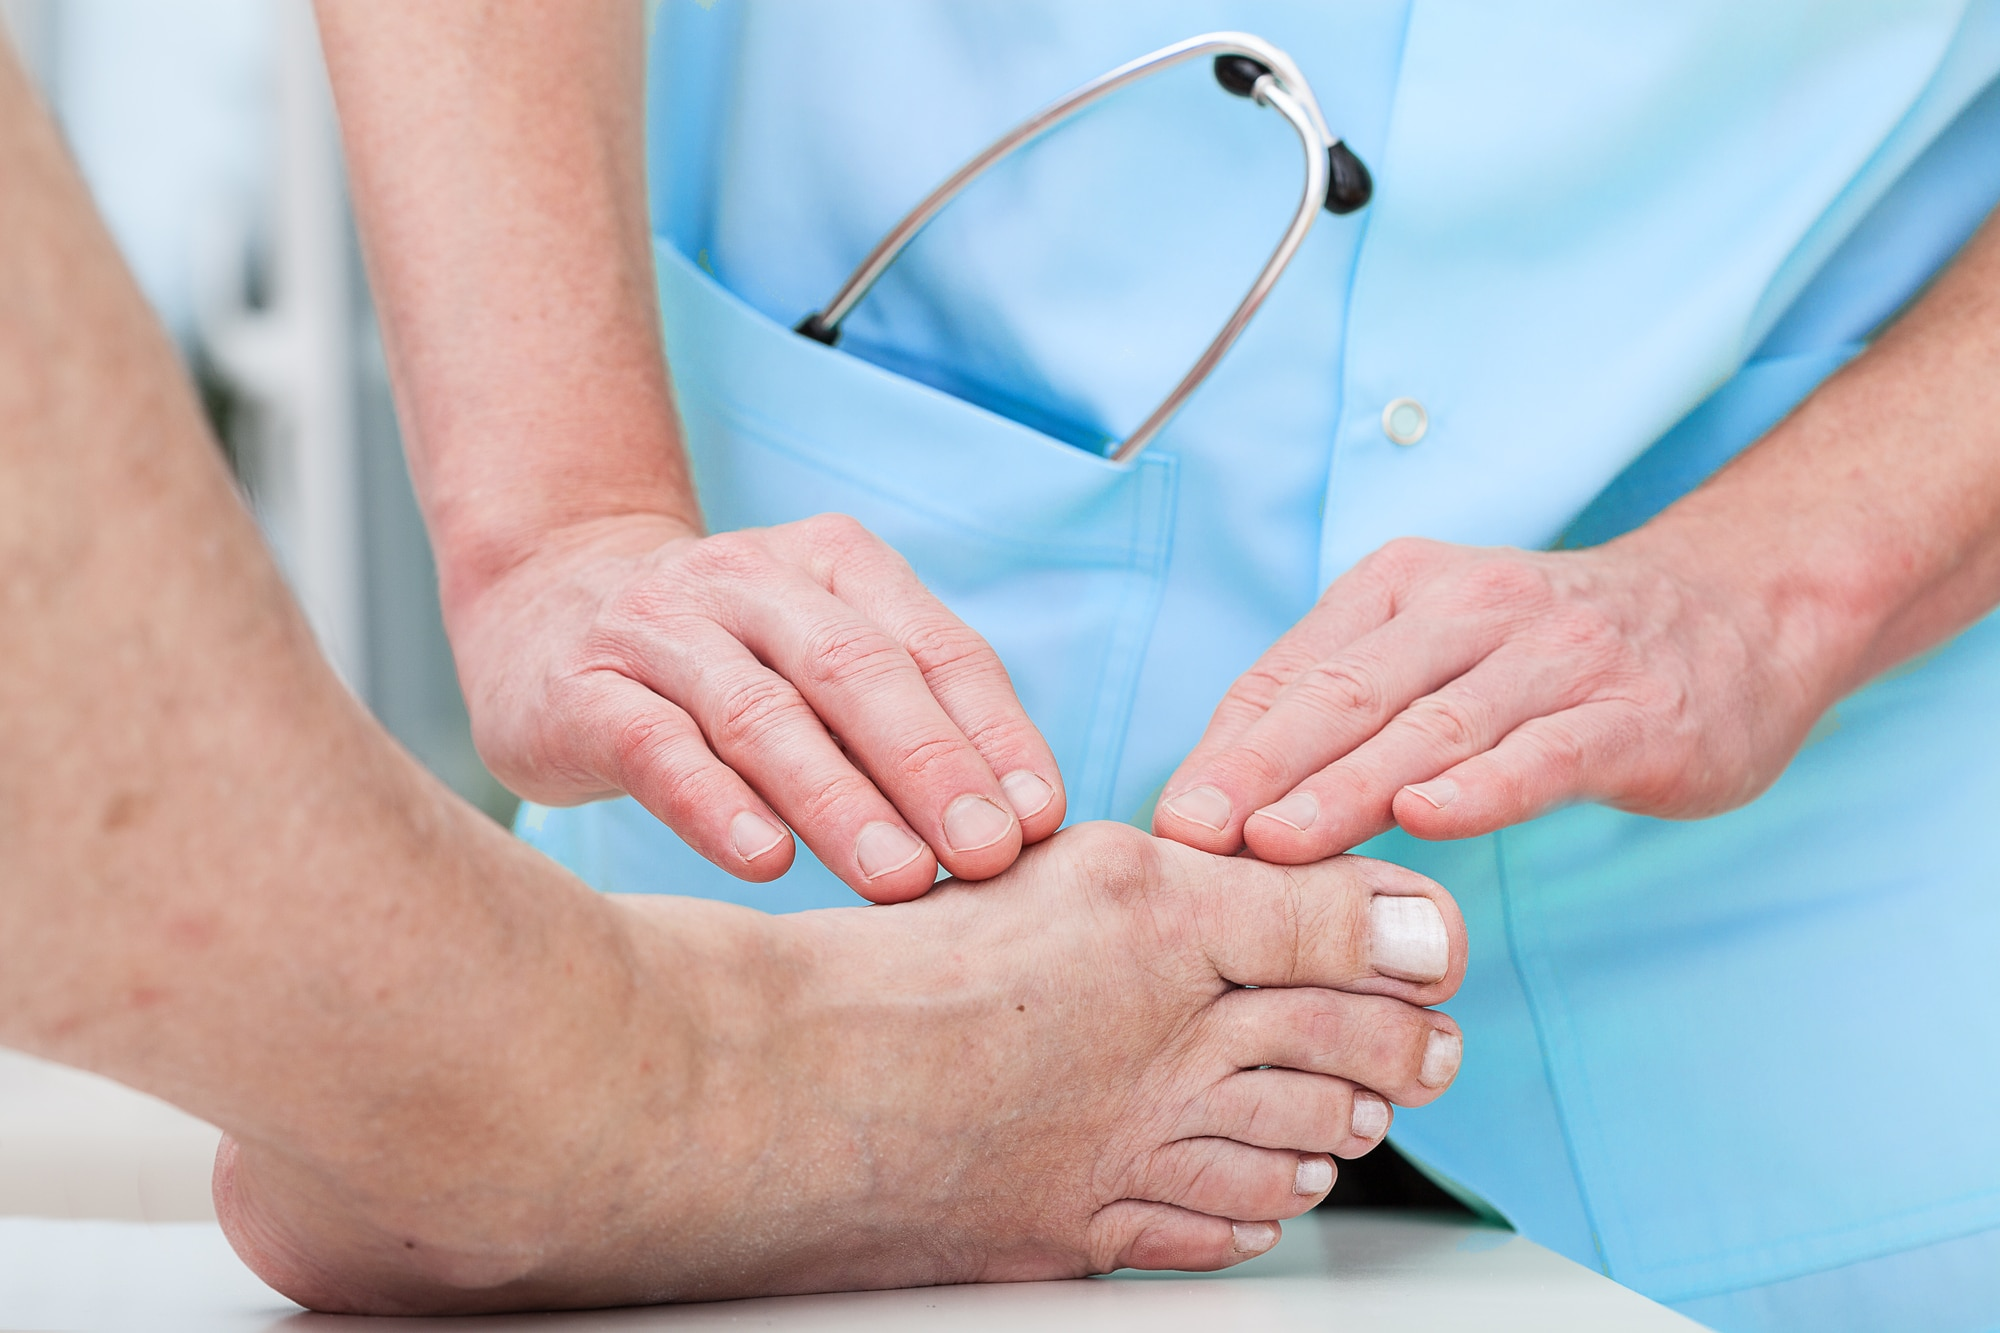 Diabetic foot doctor at work helping a patient